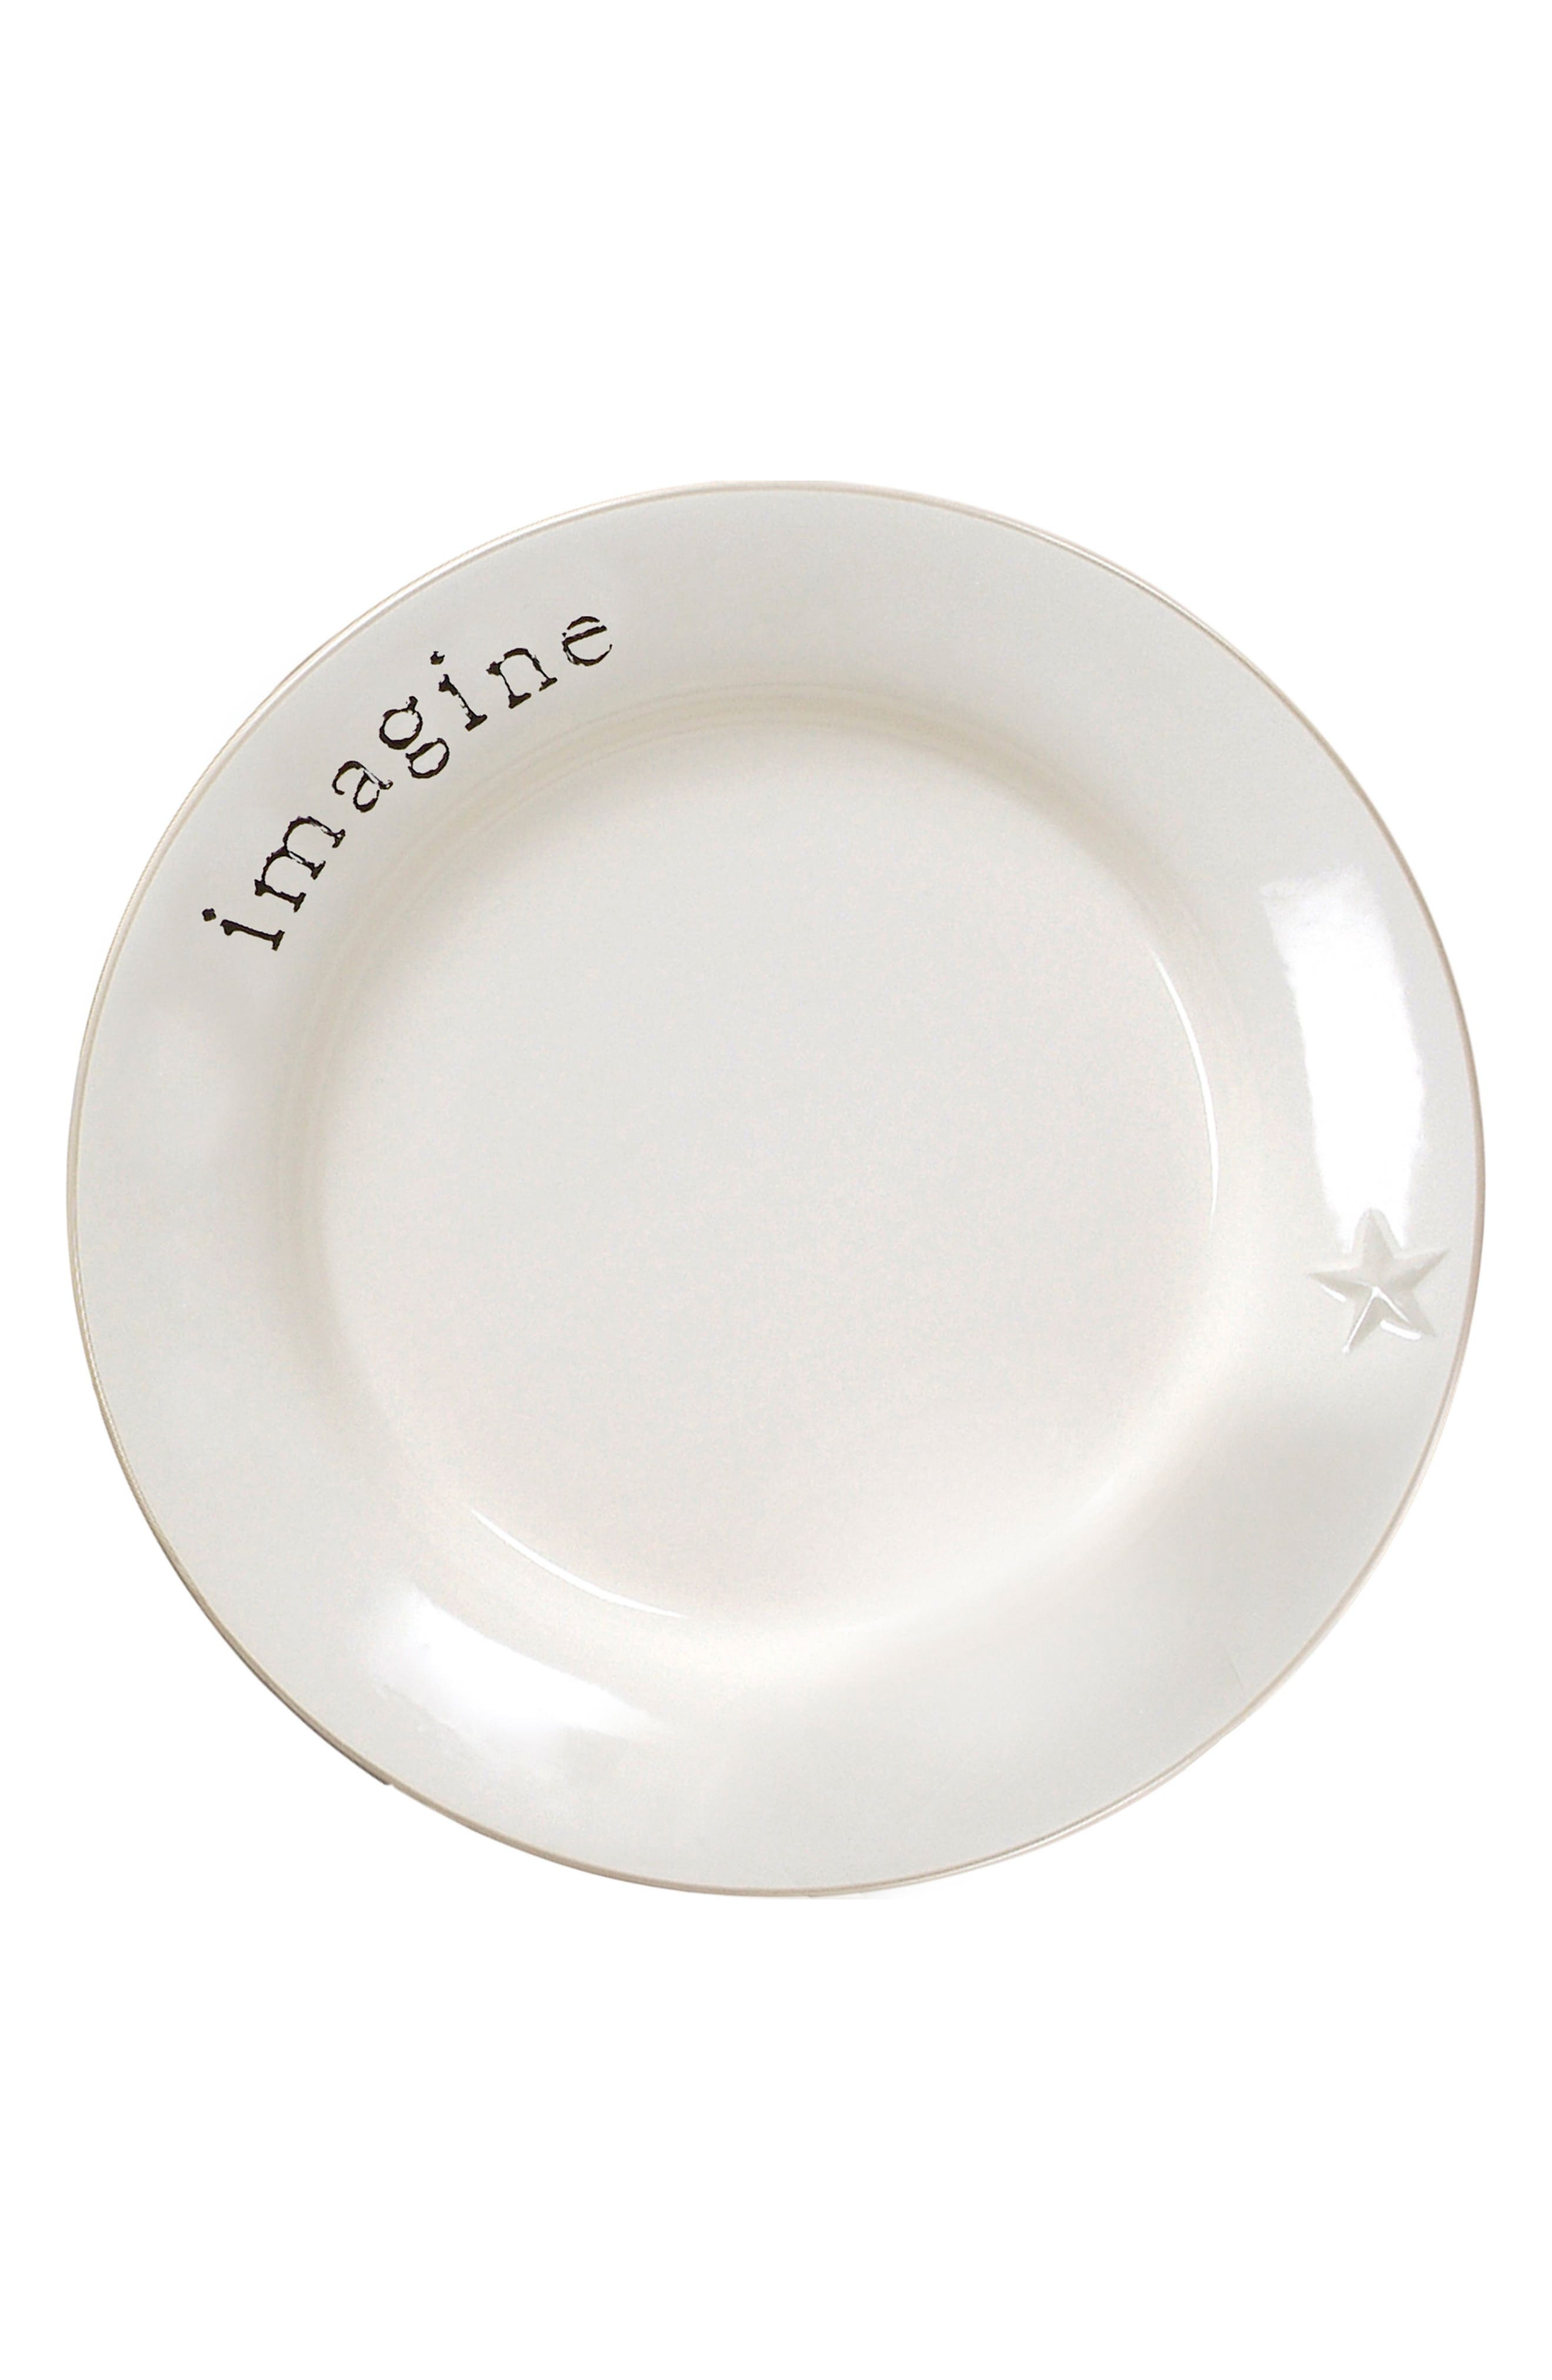 Word Expressions Dinner Plate,                             Main thumbnail 1, color,                             100